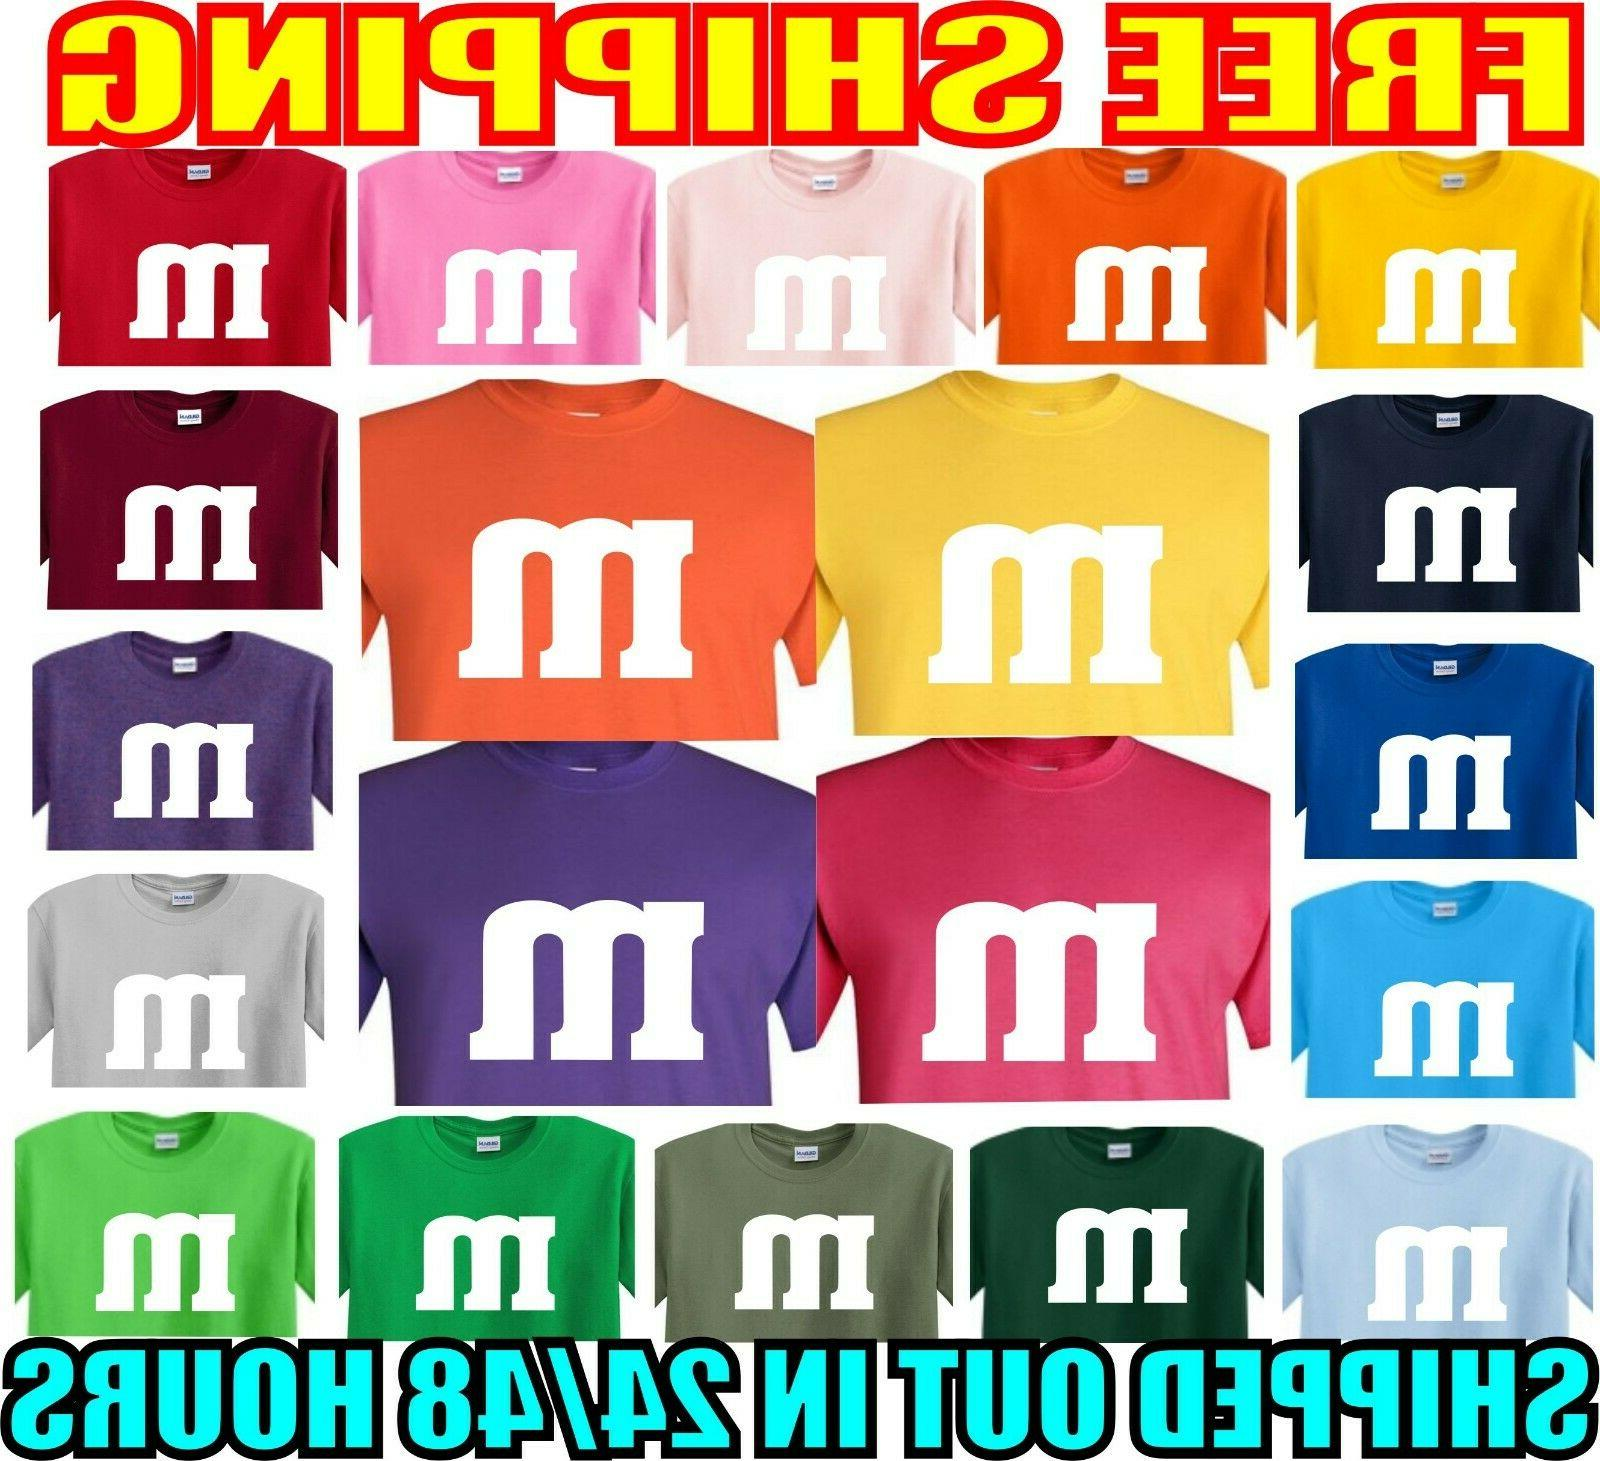 m and m s t shirt m